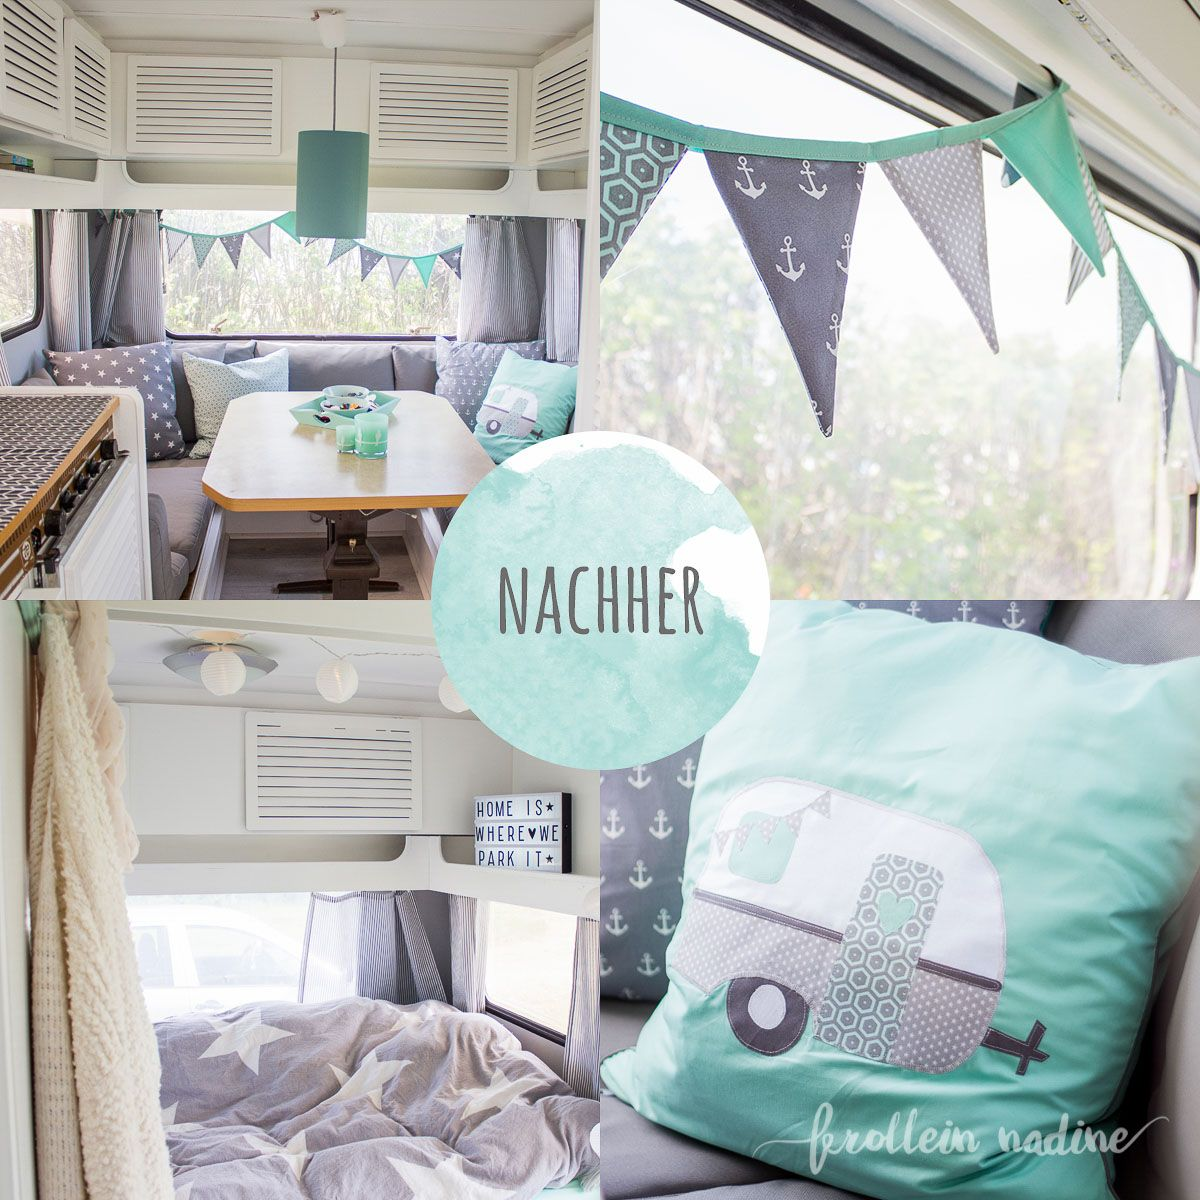 caravanmakeover nachher bild wohnwagenliebe pinterest wohnwagen wohnmobil und bilder. Black Bedroom Furniture Sets. Home Design Ideas